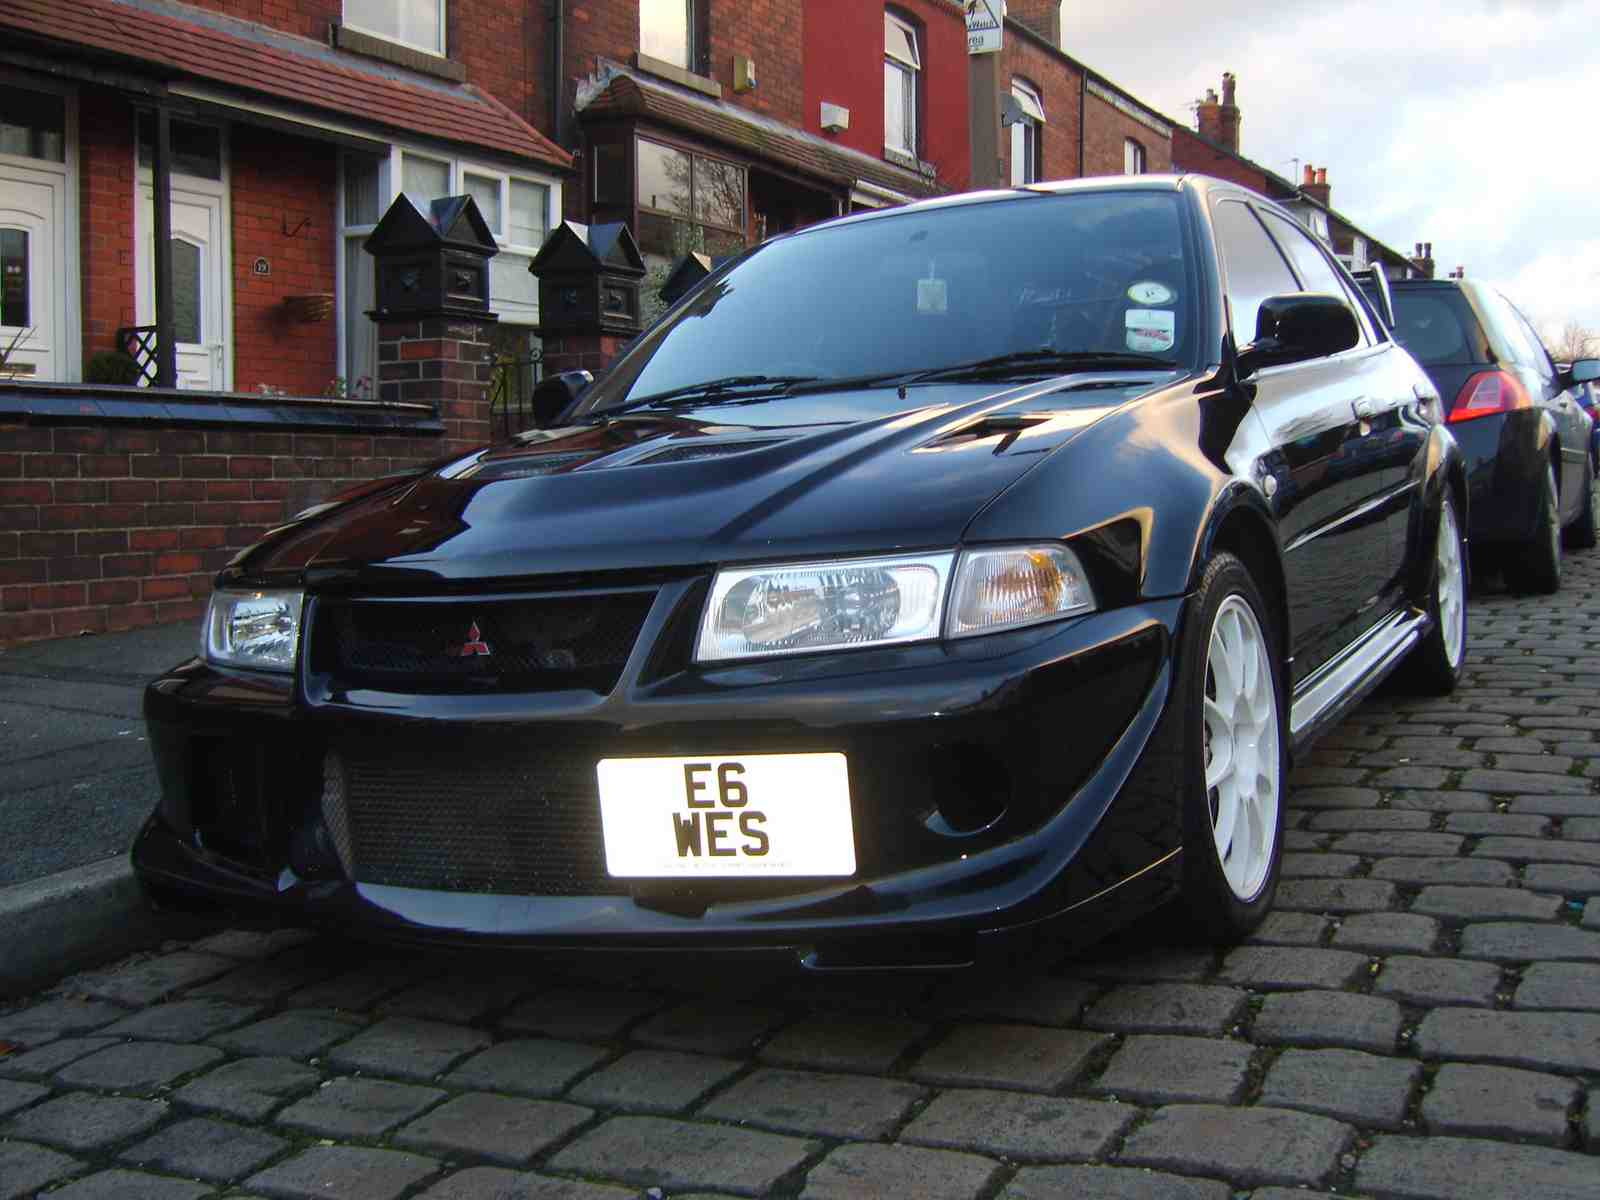 mitsubishi lancer evolution iv evolution v evolution vi evo 4 rh pagelarge com mitsubishi lancer evolution 8 service manual mitsubishi lancer evolution 8 service manual